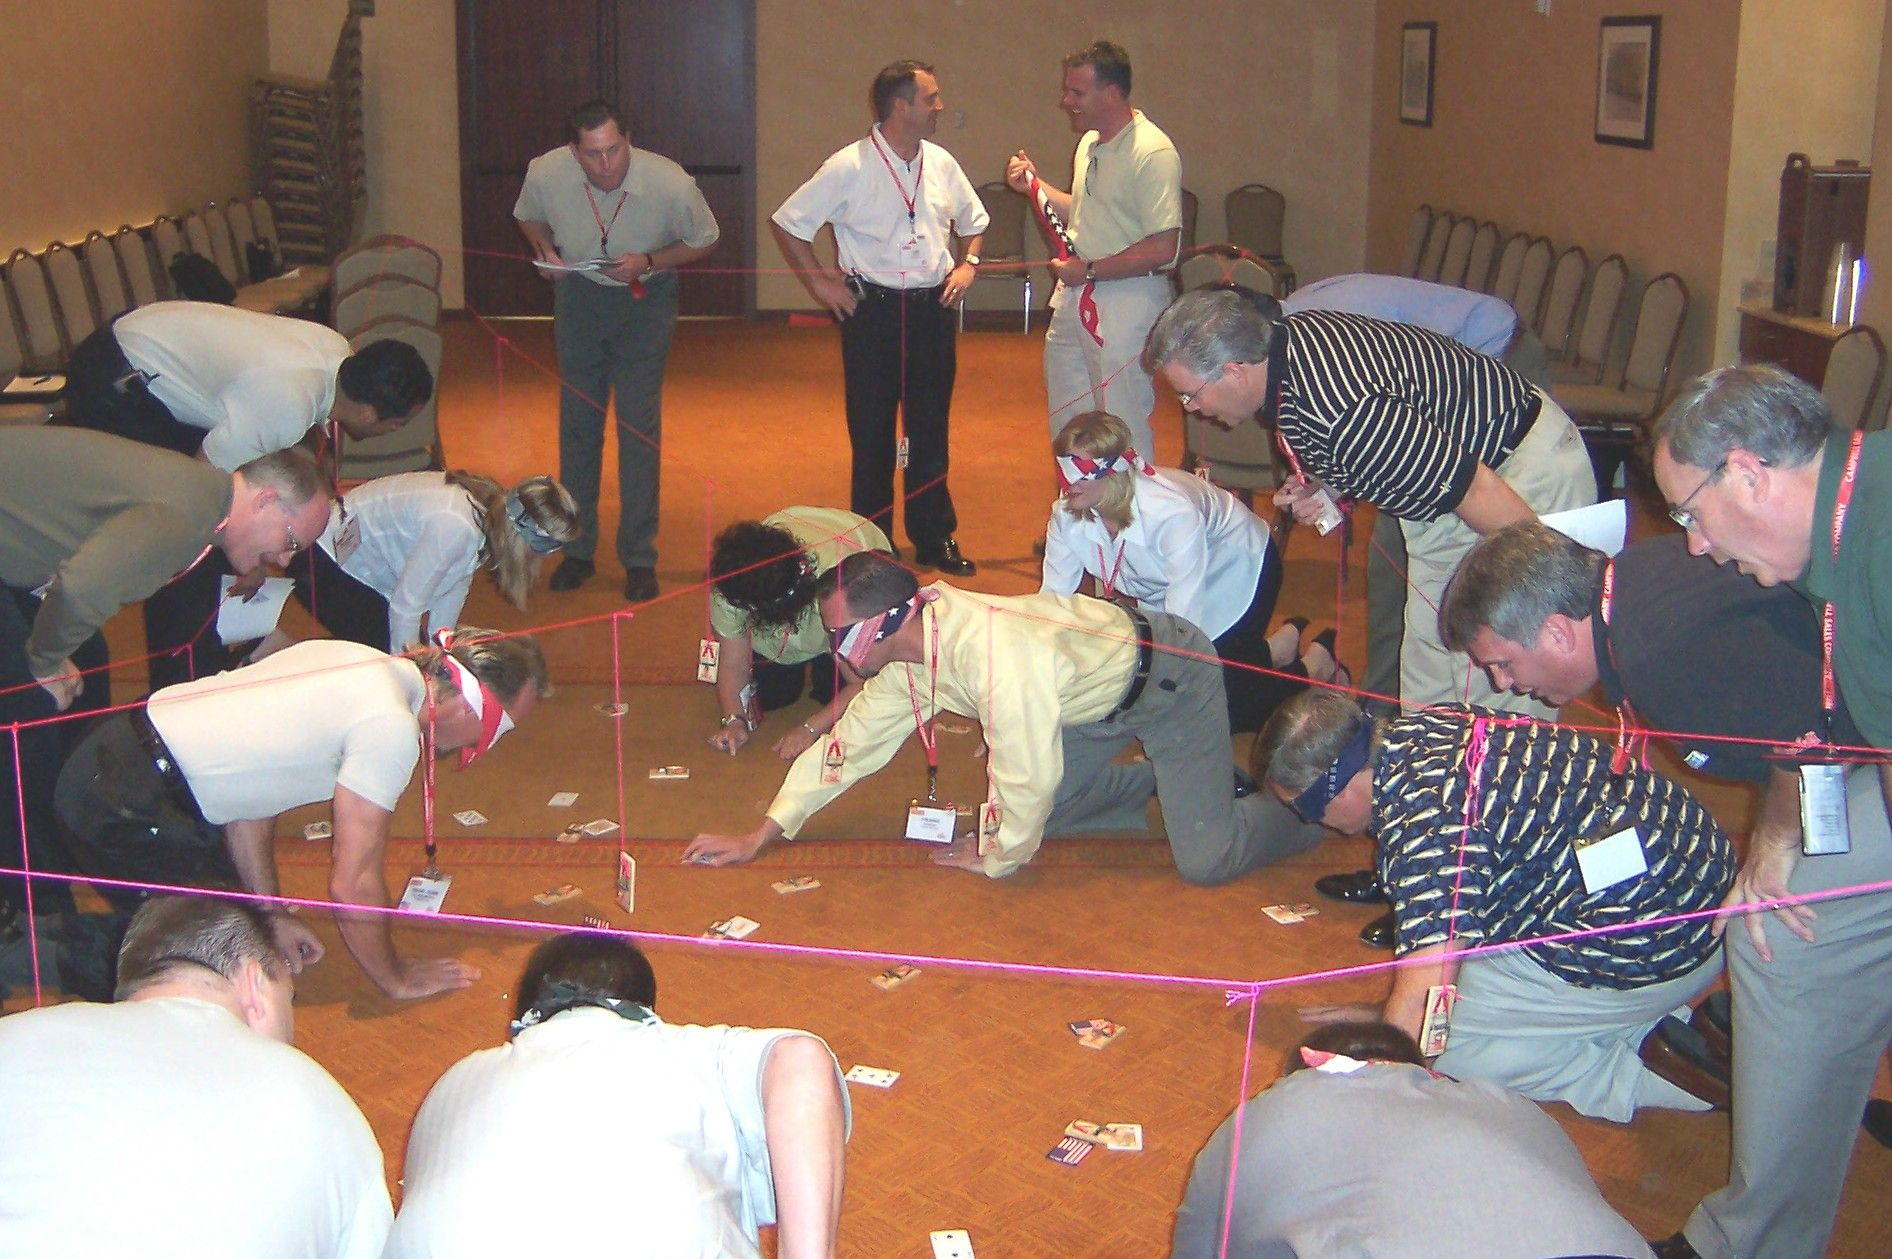 This Event Is A Great Team Building Activity For Building